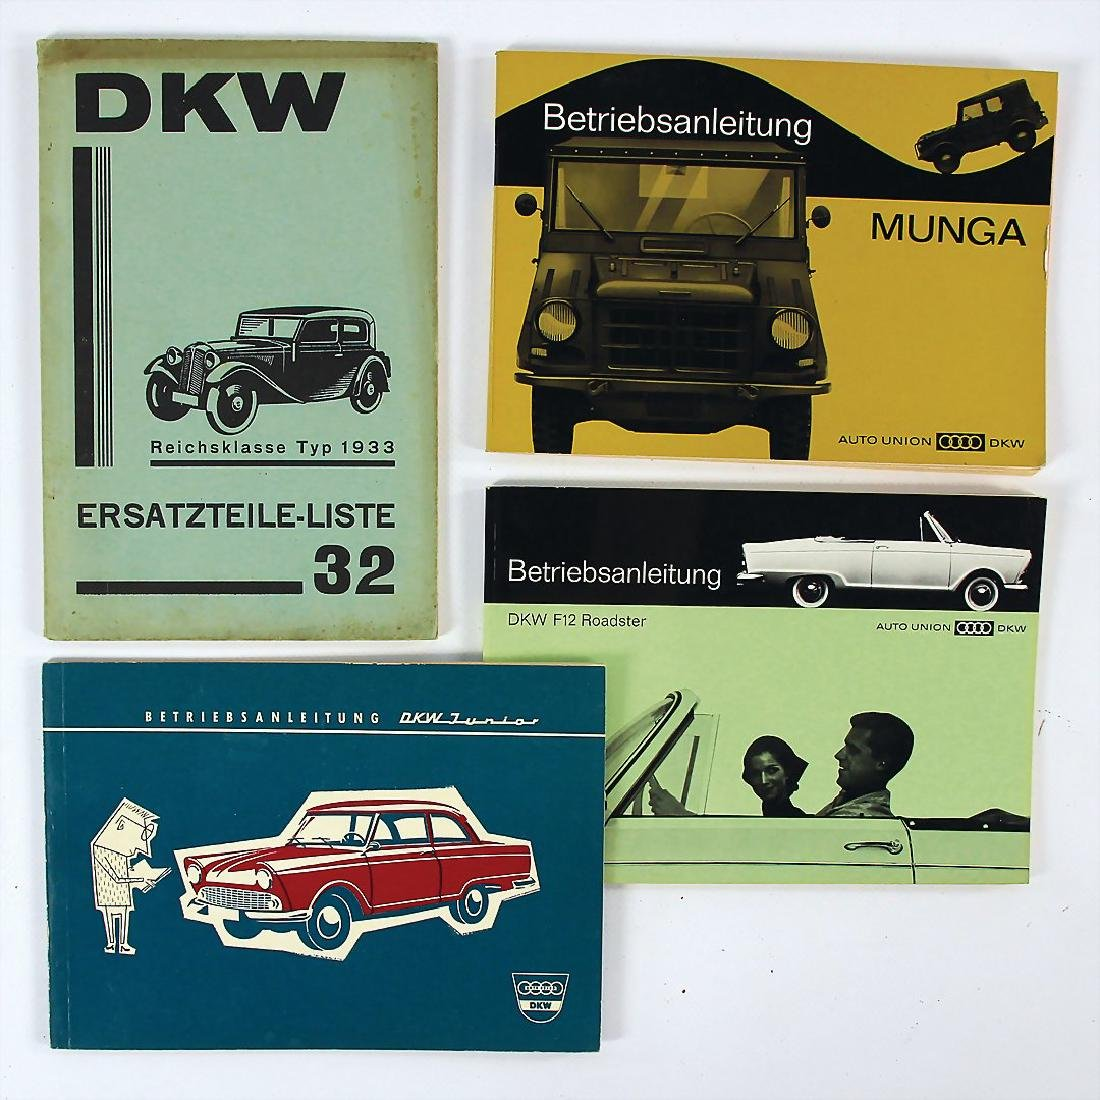 DKW/AUTO UNION mixed lot with 4 pieces, 3x operating